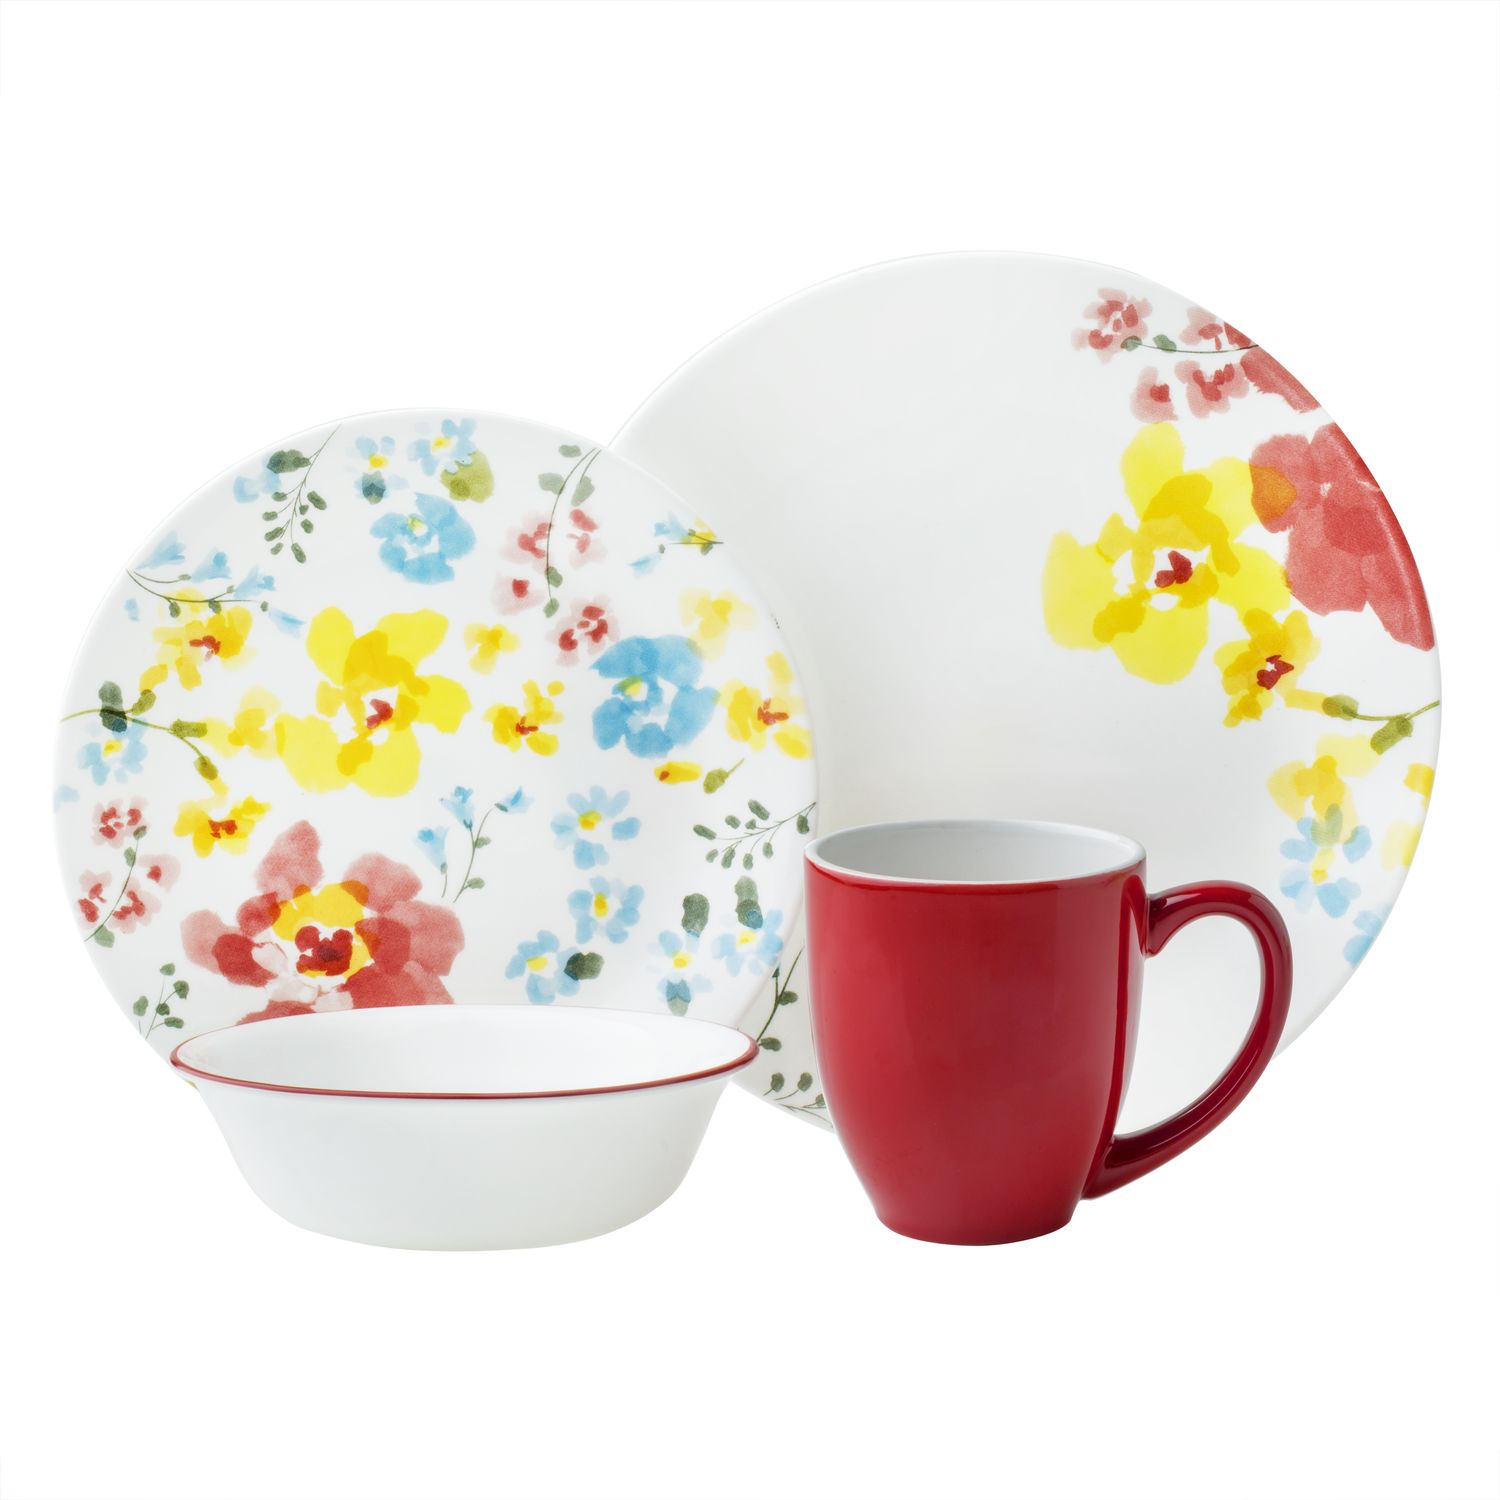 Marvellous Corelle Berries And Leaves 16 Pc Dinnerware Set Gallery ...